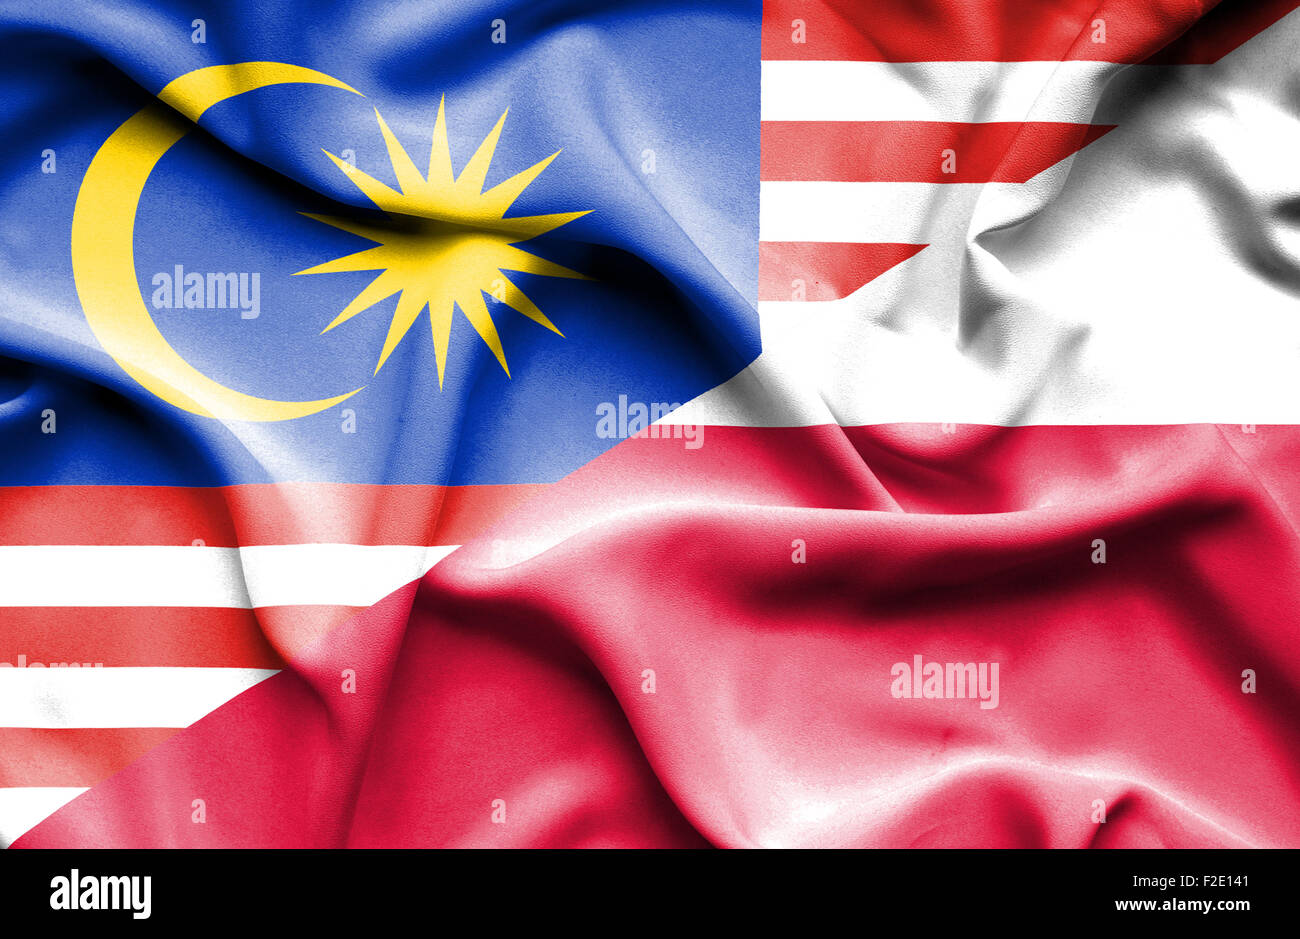 waving flag of poland and malaysia stock photo royalty free image